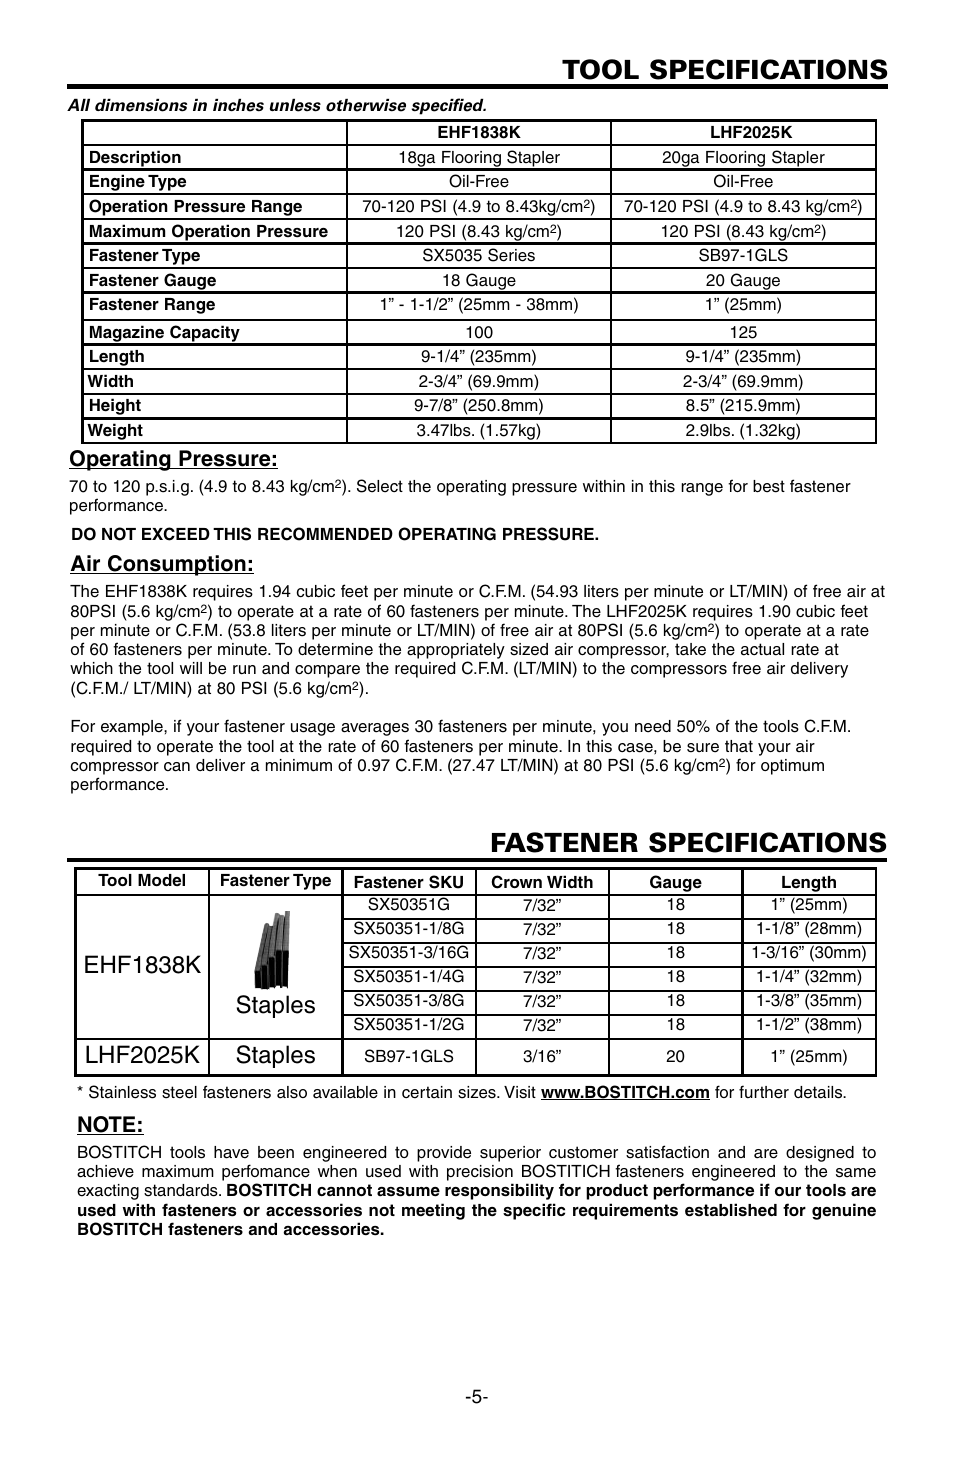 Tool specifications, Fastener specifications, Ehf1838k staples | Lhf2025k  staples, Operating pressure, Air